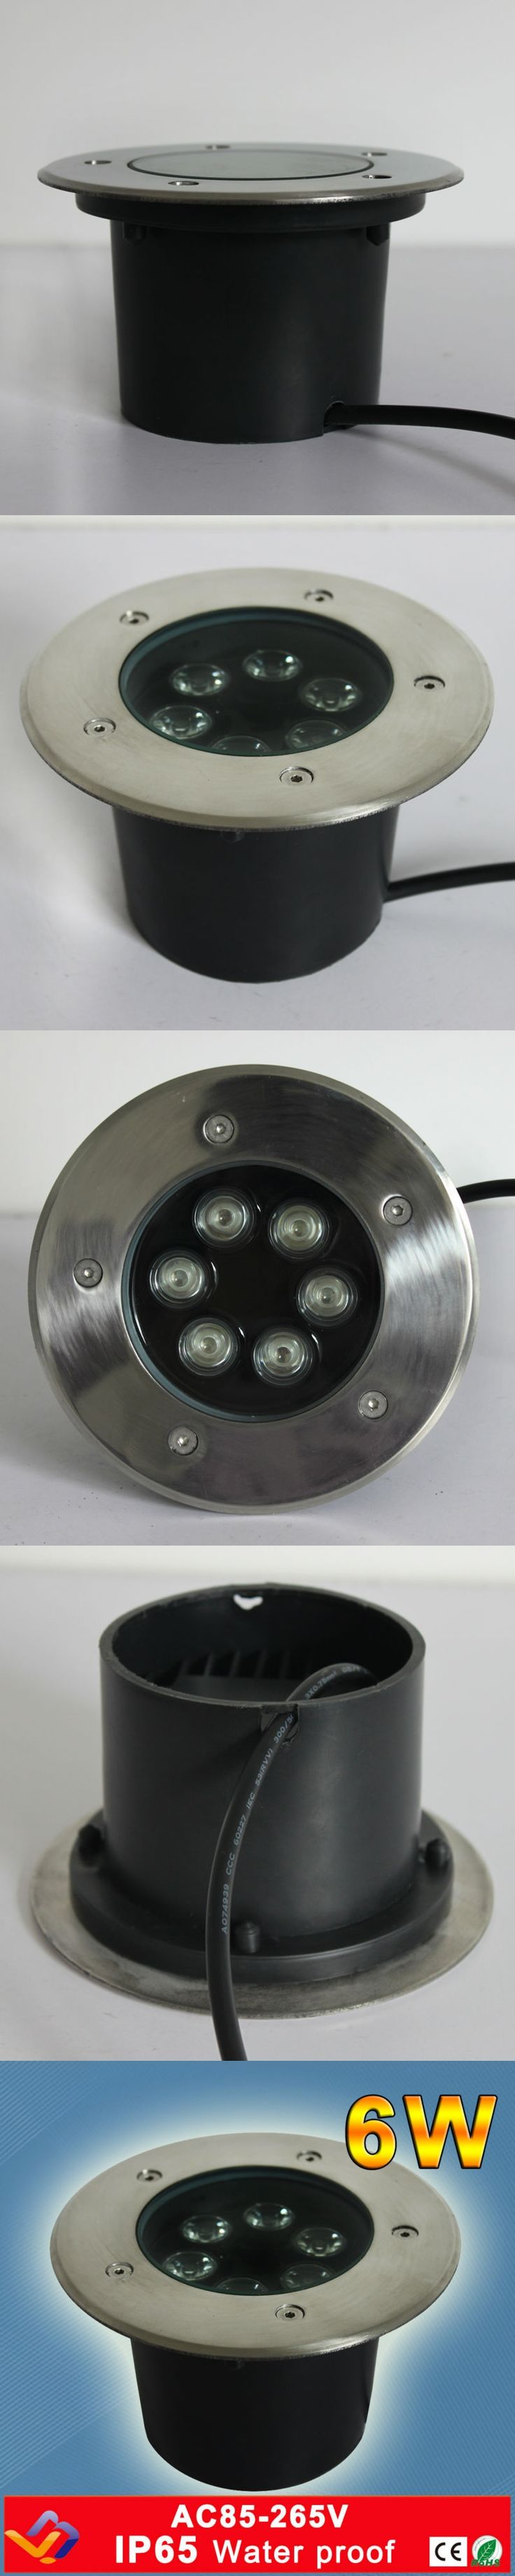 6*1W LED round underground lamps Buried lighting LED project lamps LED outdoor lamps  AC85~265V  Waterproof  3Years Warranty